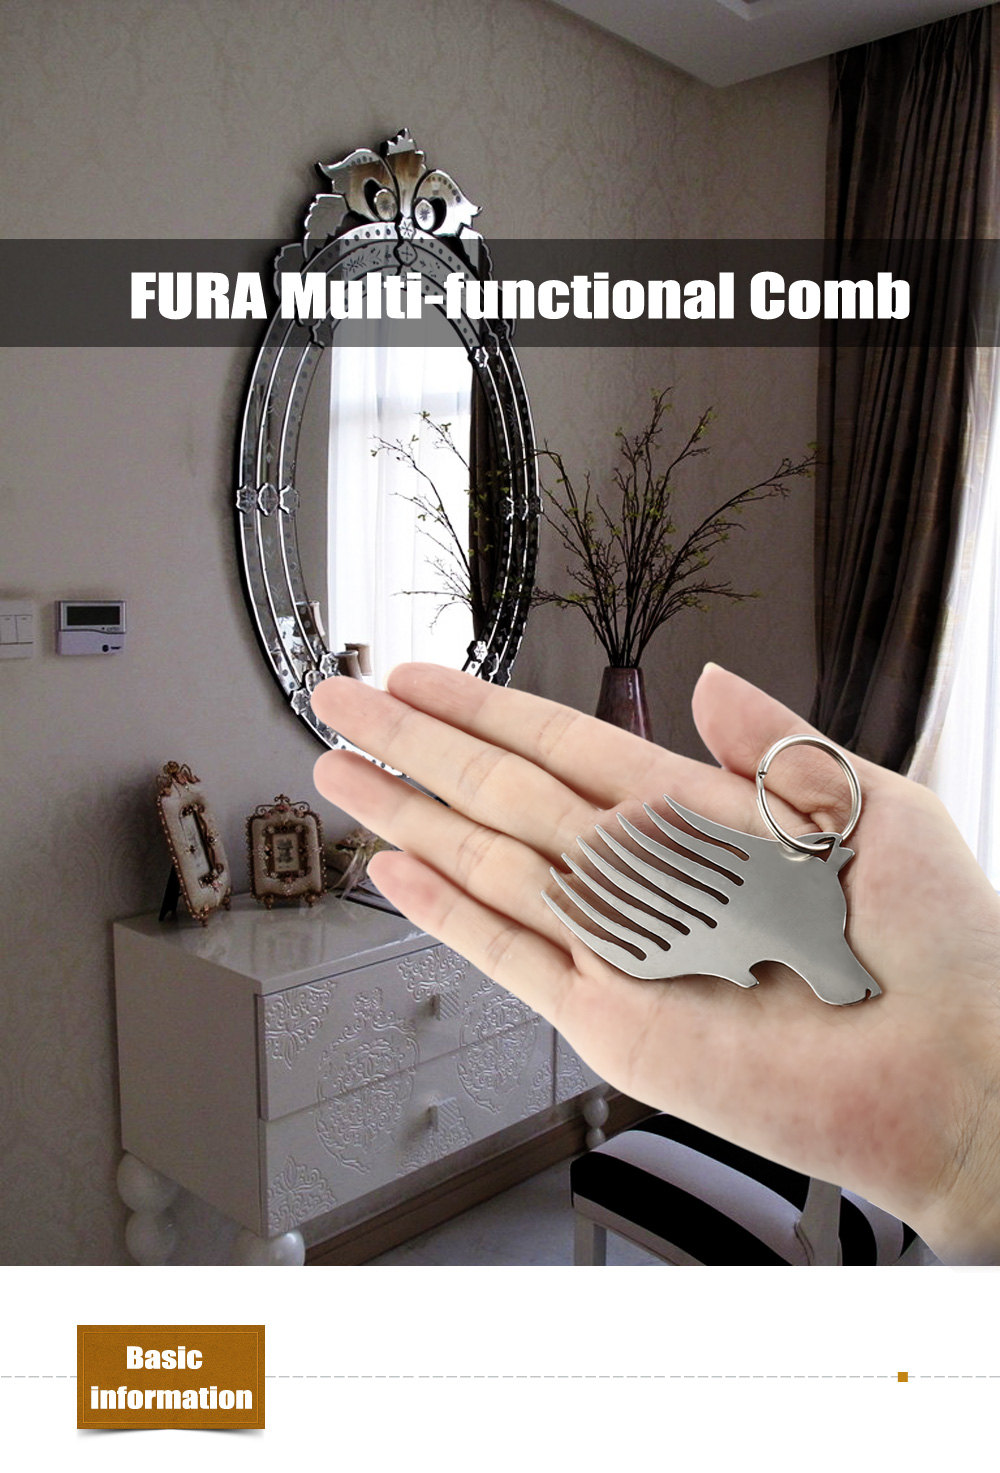 FURA Stainless Steel Multi-functional Comb / Bottle Opener with Key Ring